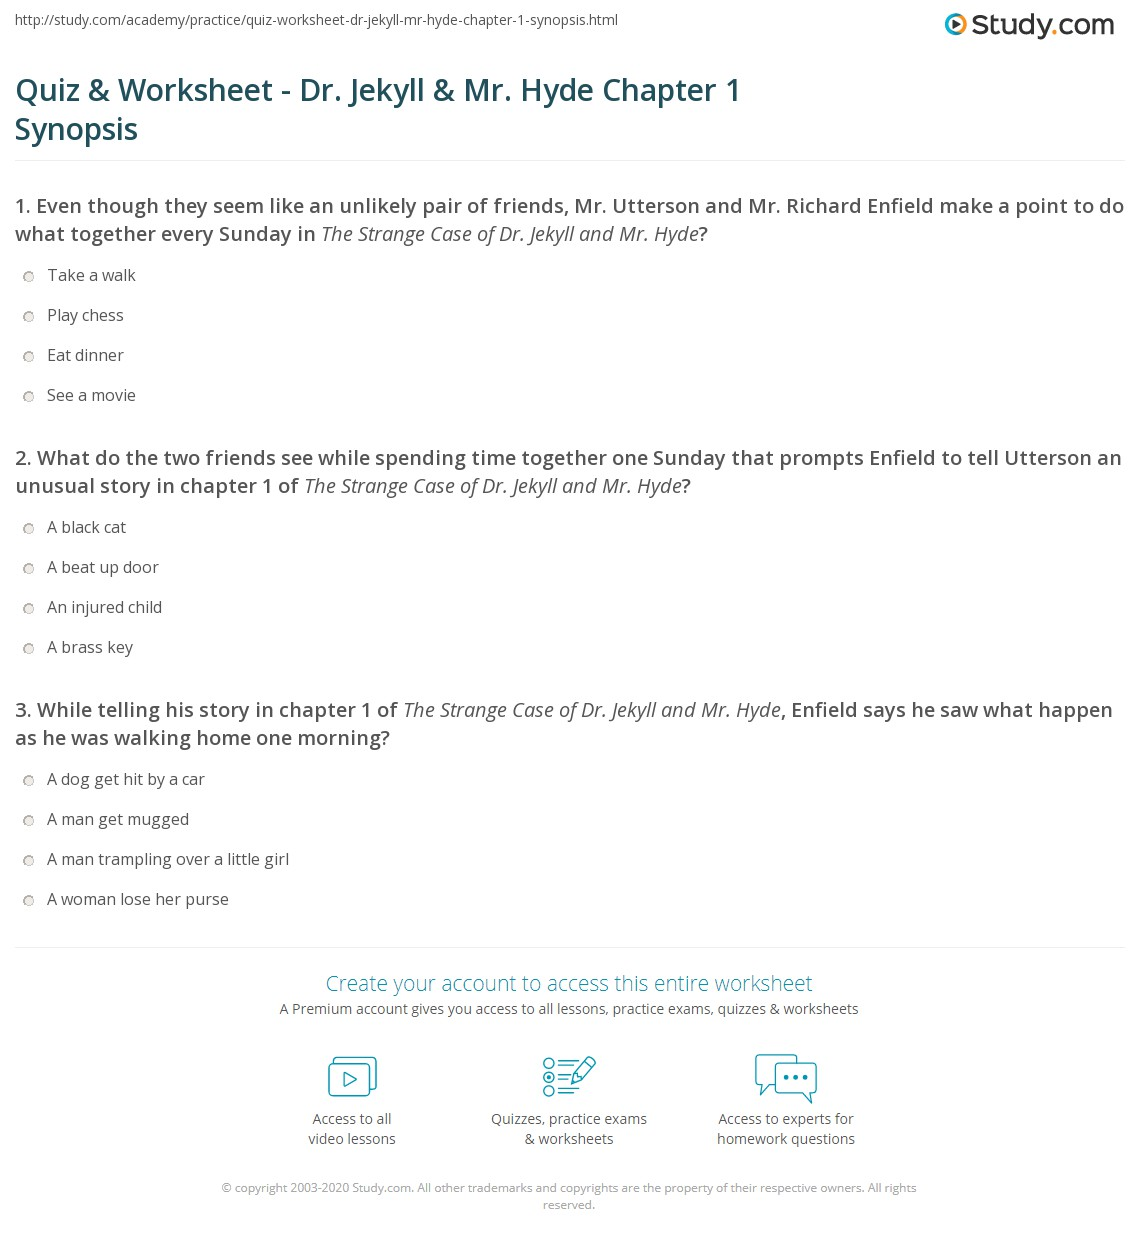 dr jekyll and mr hyde essay ecommerce tester cover letter 1 synopsis quiz worksheet dr jekyll mr hyde chapter 1 synopsis quiz worksheet dr jekyll mr hyde chapter 1 synopsishtml dr jekyll and mr hyde essay